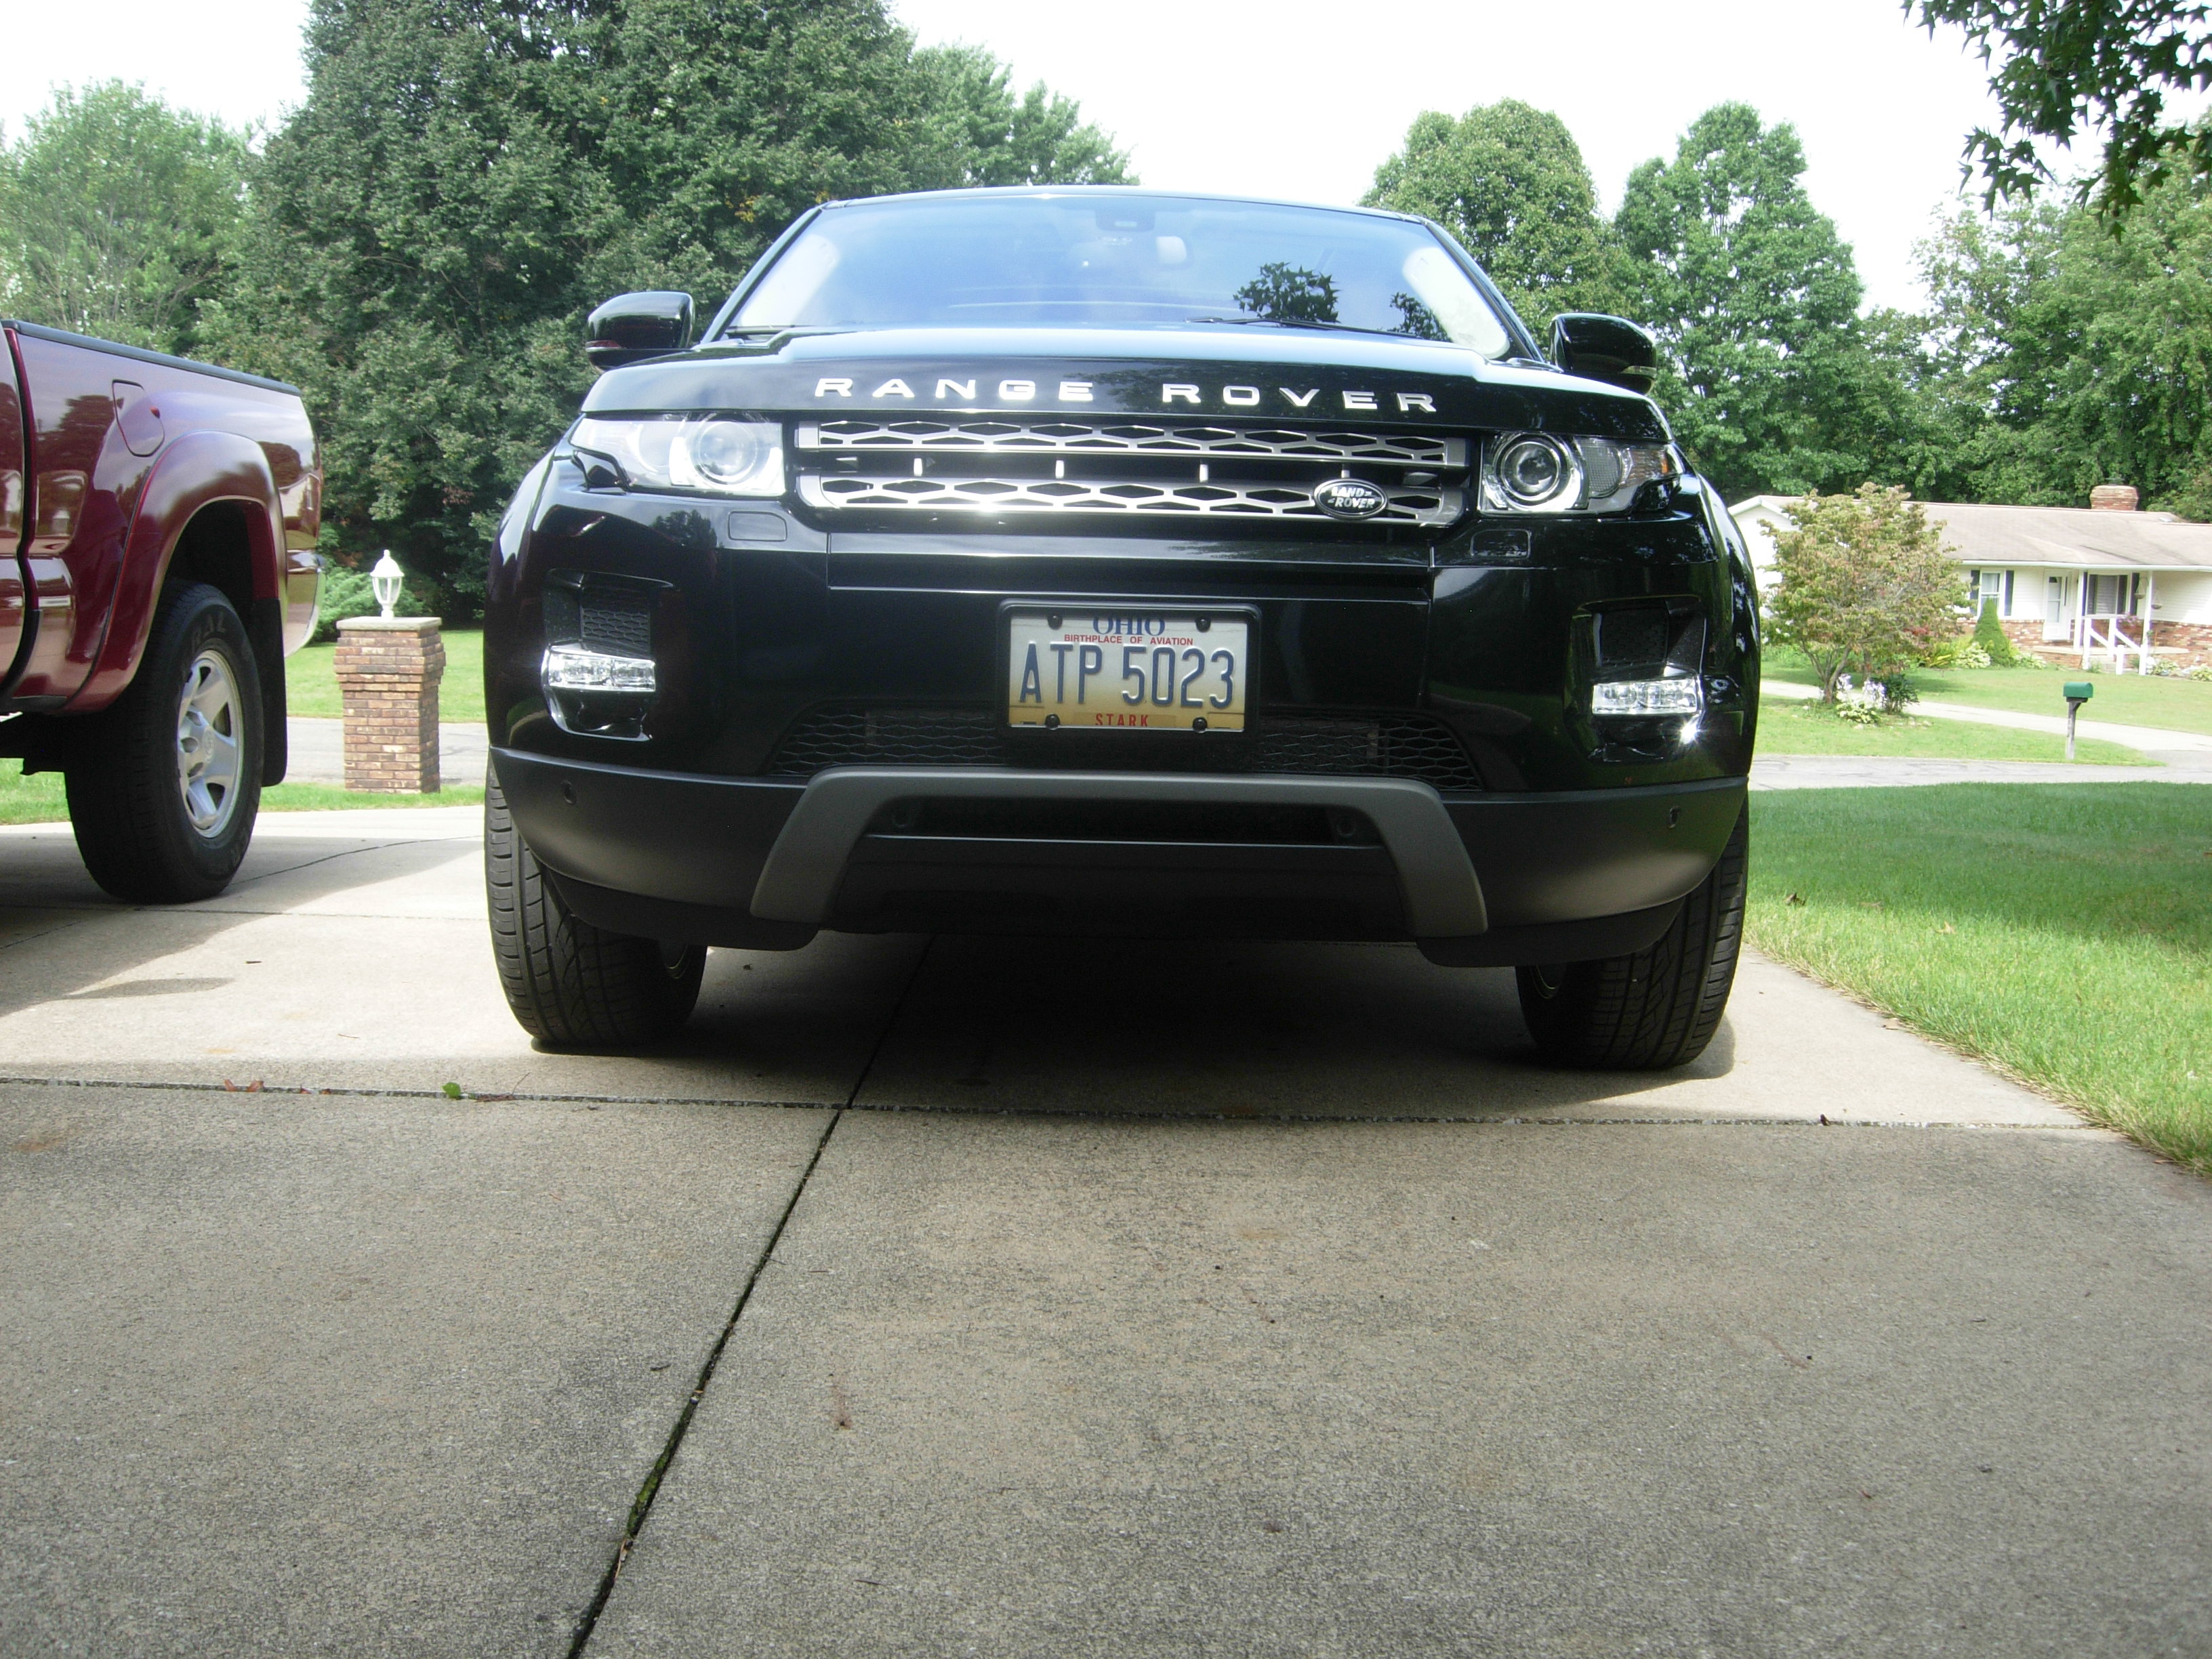 Name:  evoque after skid plate1.JPG Views: 153 Size:  1.57 MB